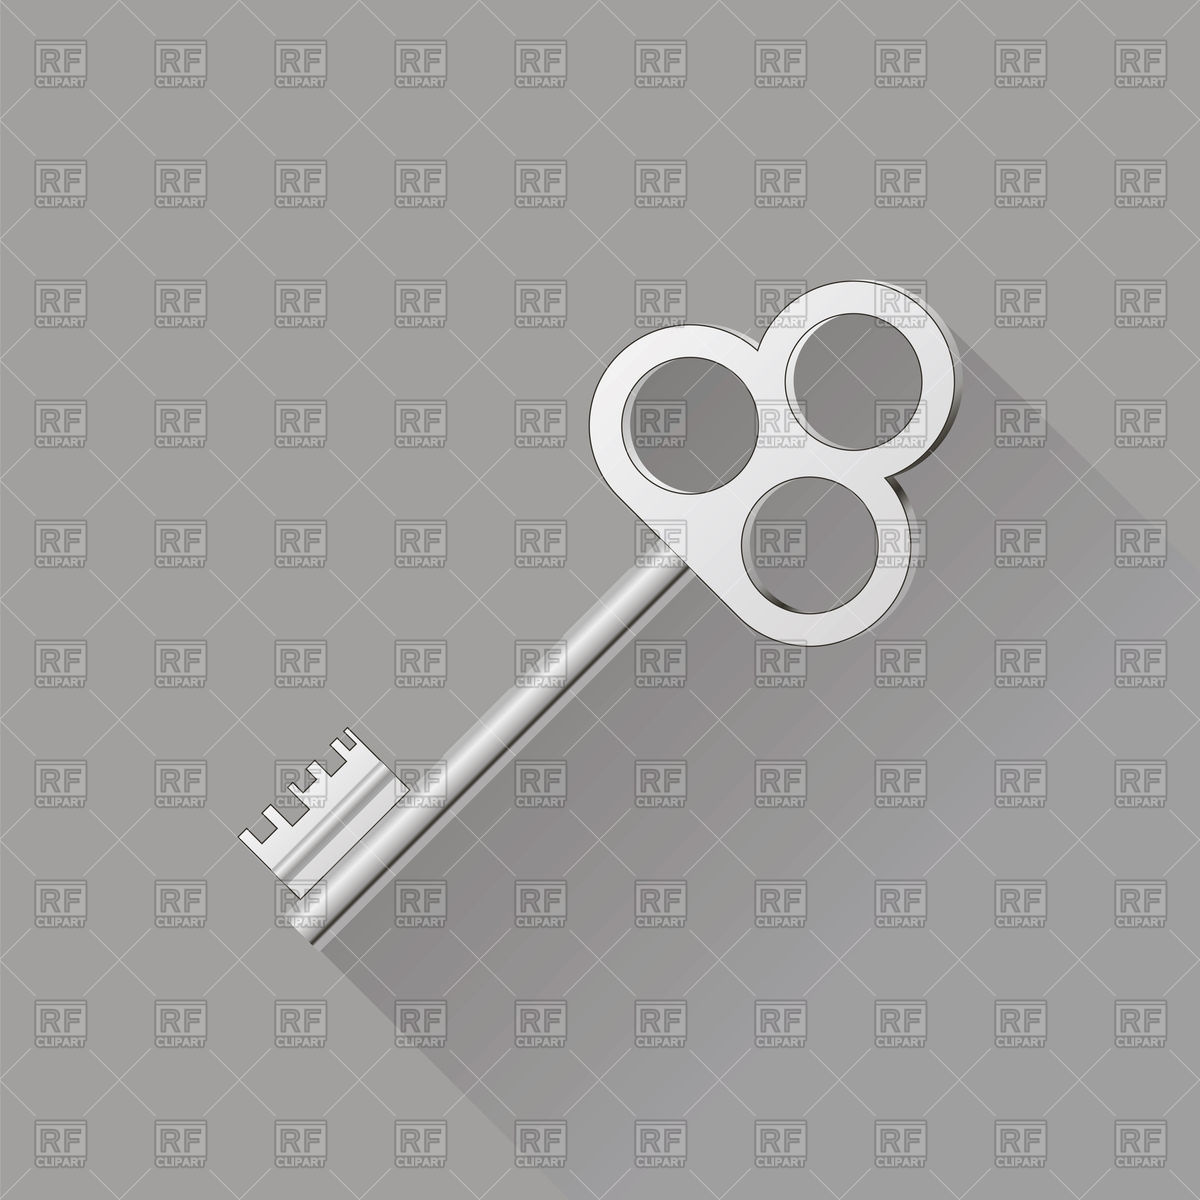 1200x1200 Retro Key Icon Vector Image Vector Artwork Of Icons And Emblems